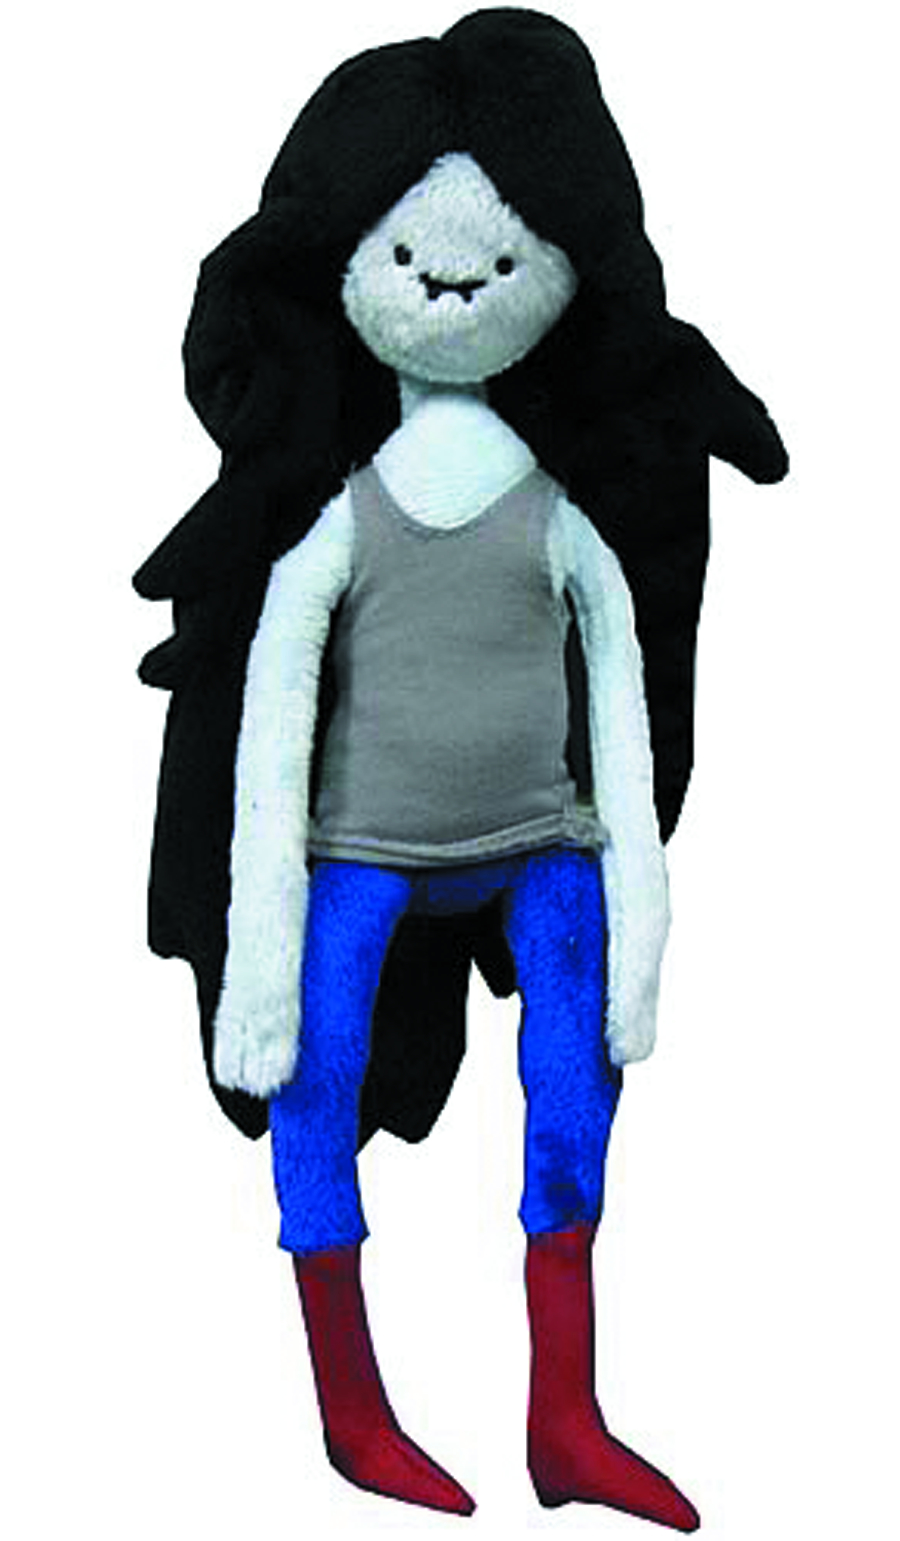 JUL128096   ADVENTURE TIME MARCELINE PLUSH   Previews World ADVENTURE TIME MARCELINE PLUSH